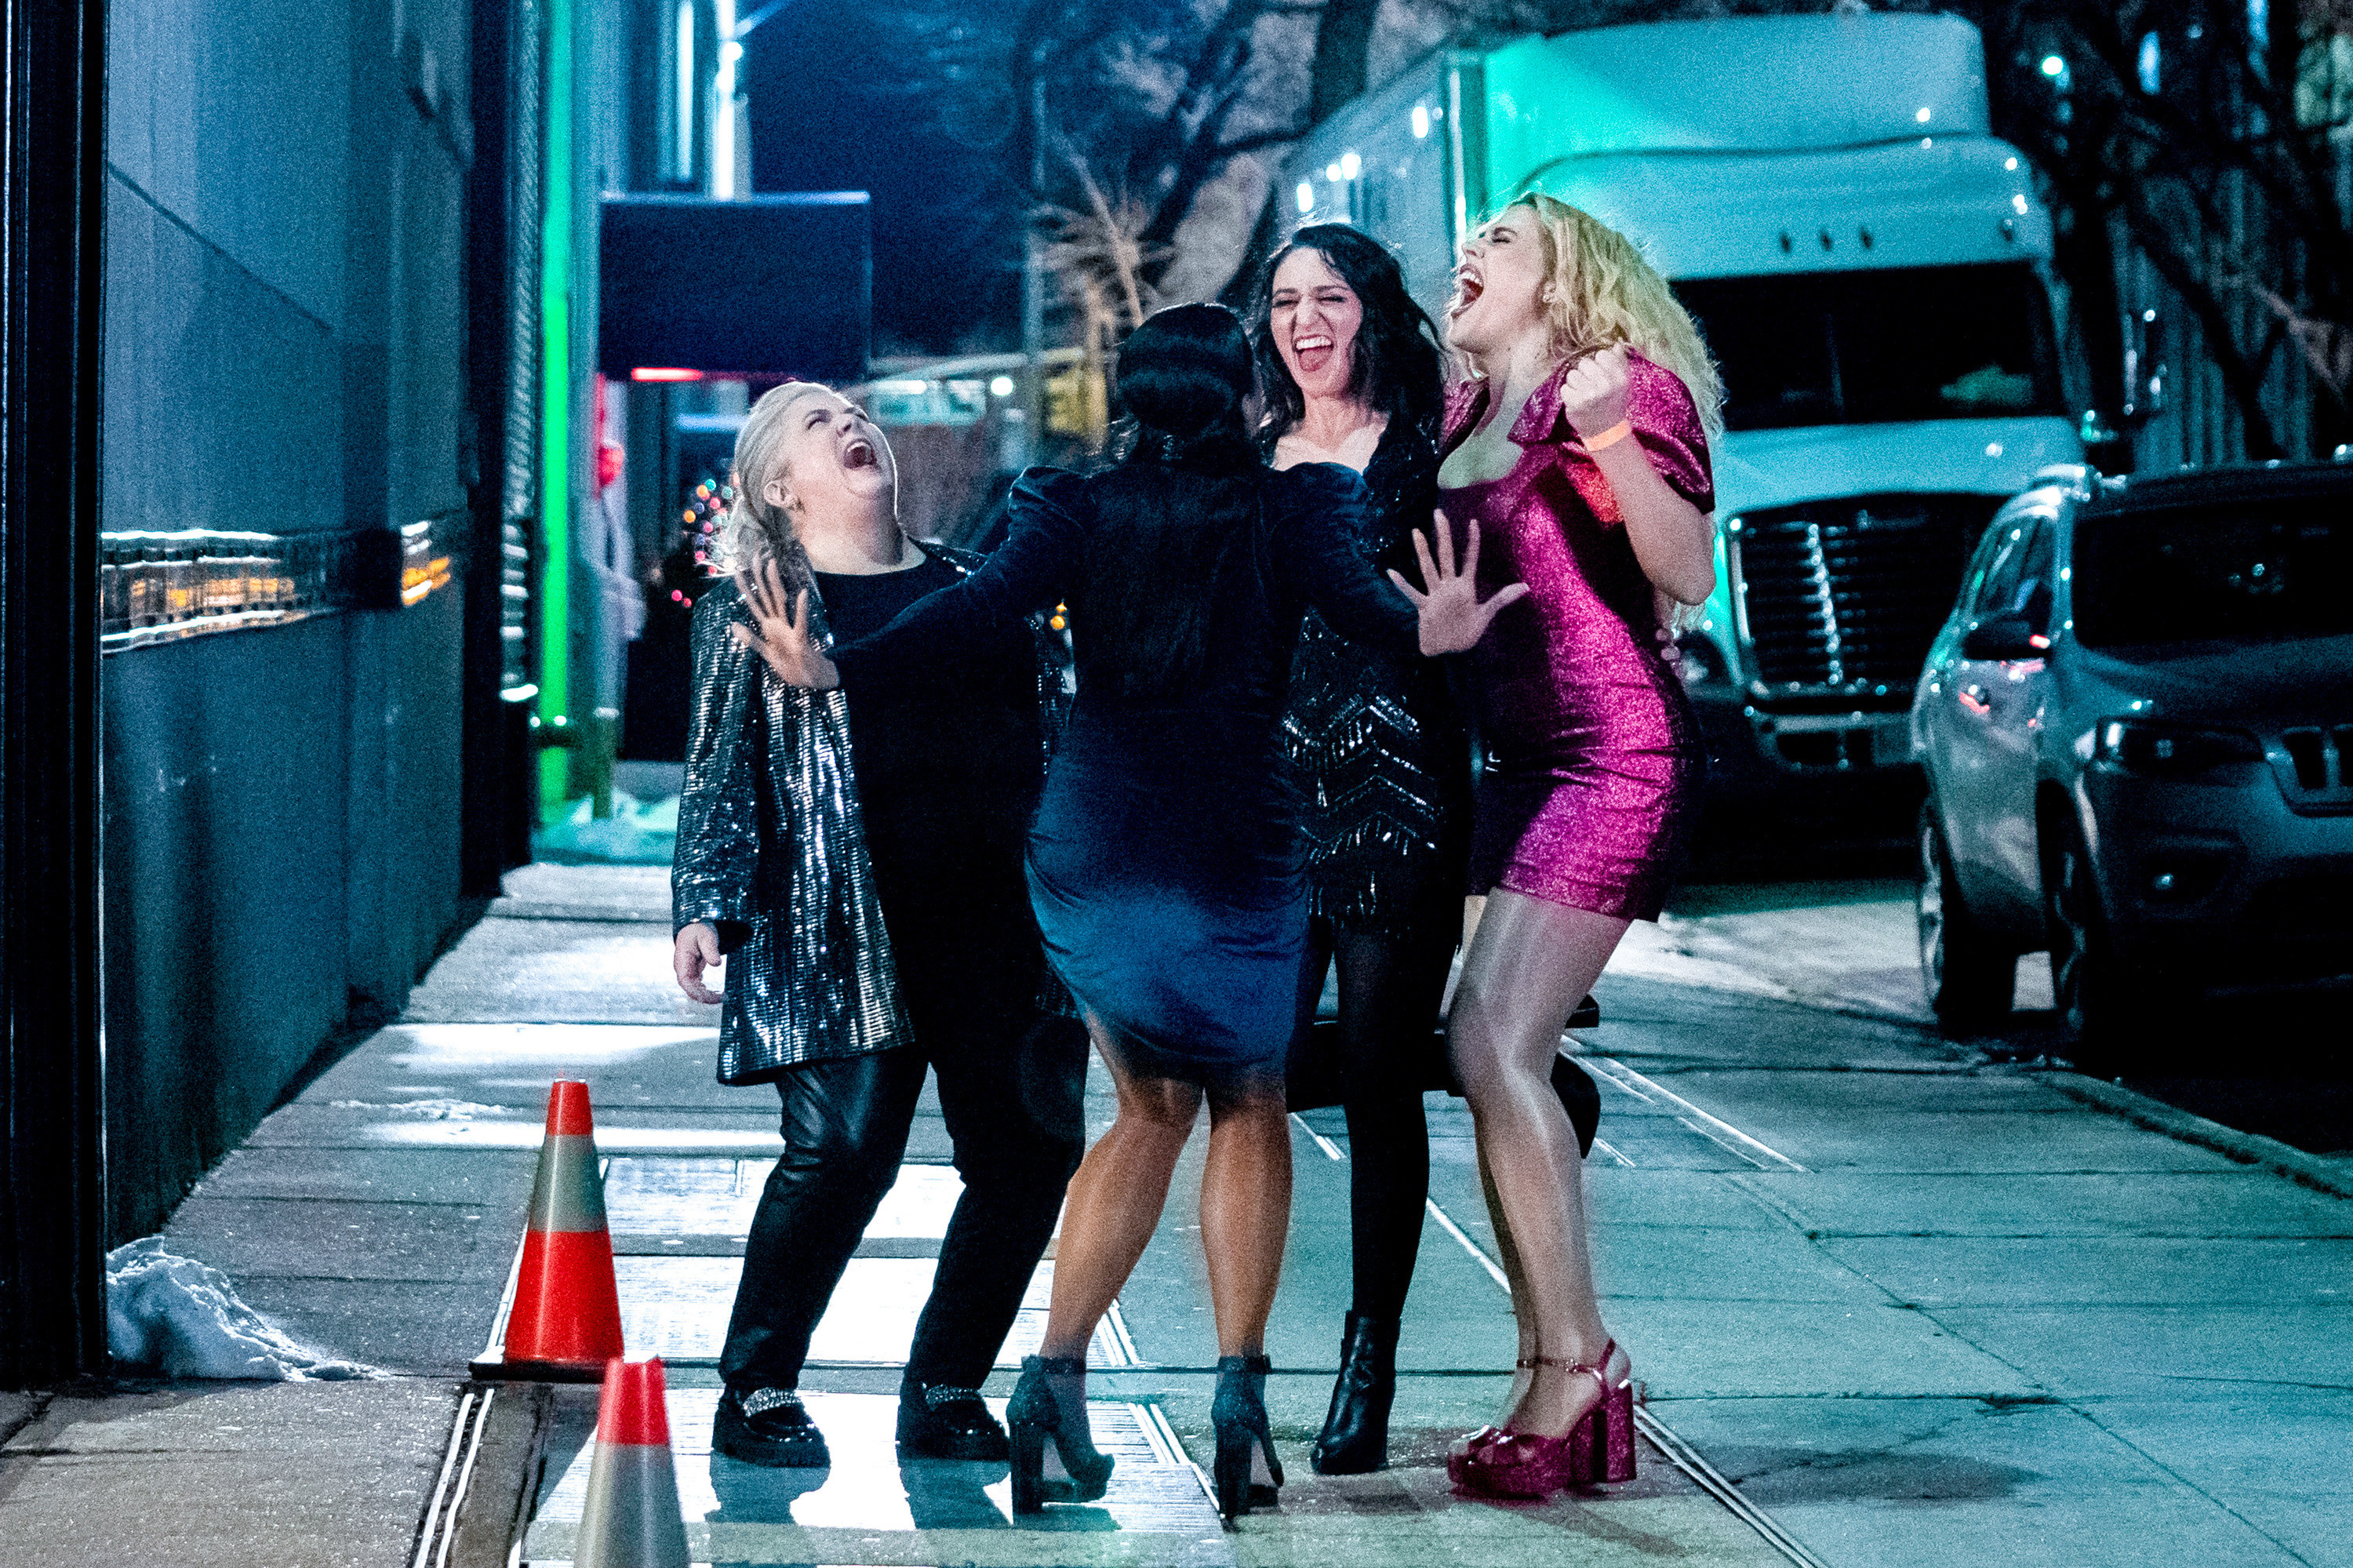 """Paula Pell, Sara Bareilles, and Busy Philipps cheer in this still image from the eighth episode of """"Girls5eva"""""""